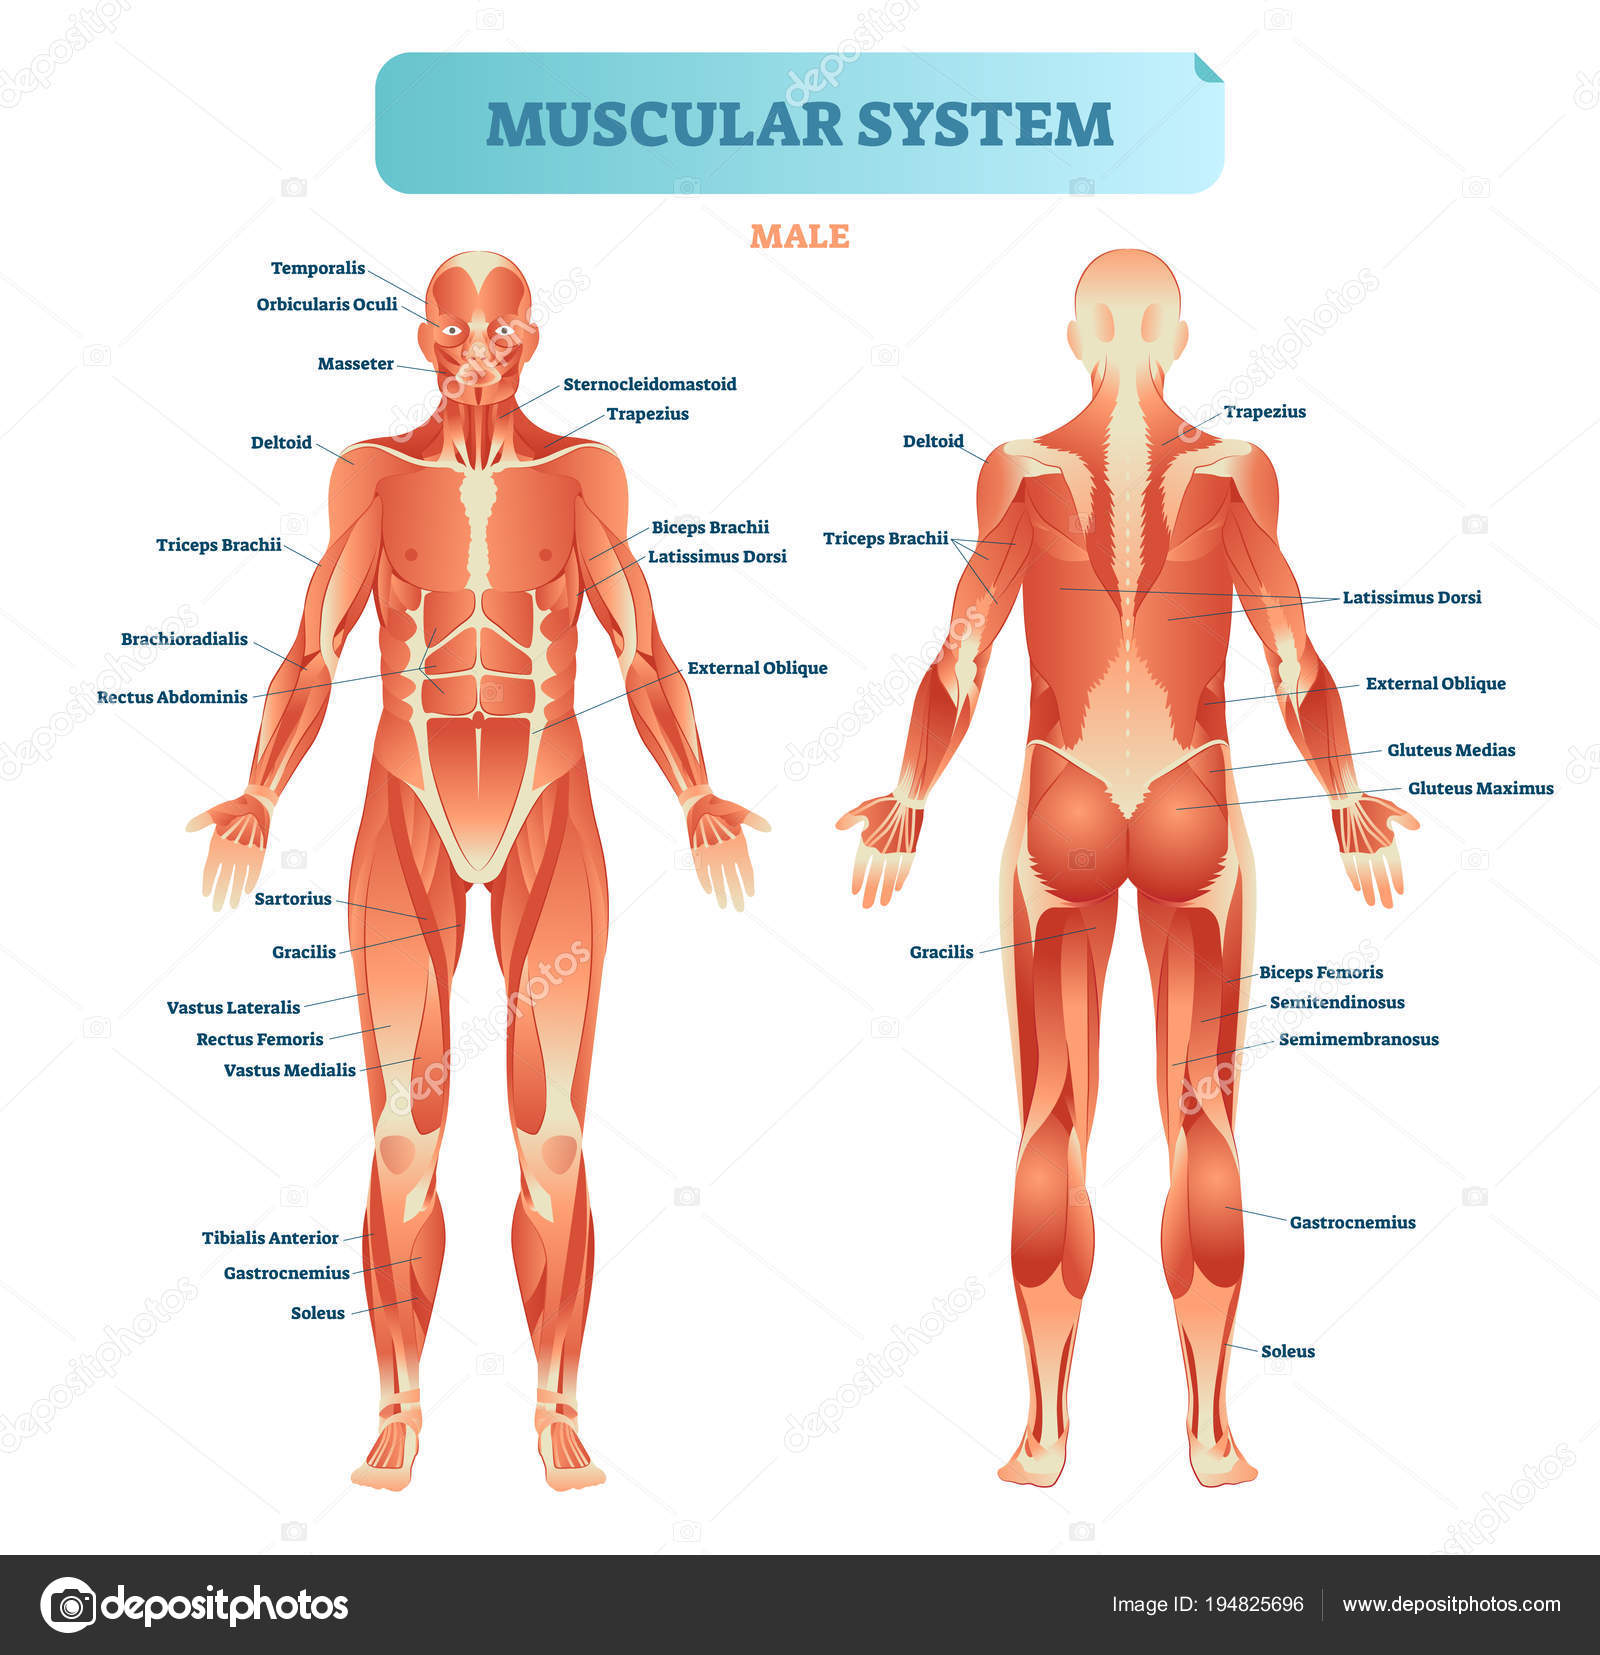 Male muscular system full anatomical body diagram with muscle male muscular system full anatomical body diagram with muscle scheme vector illustration educational poster ccuart Gallery